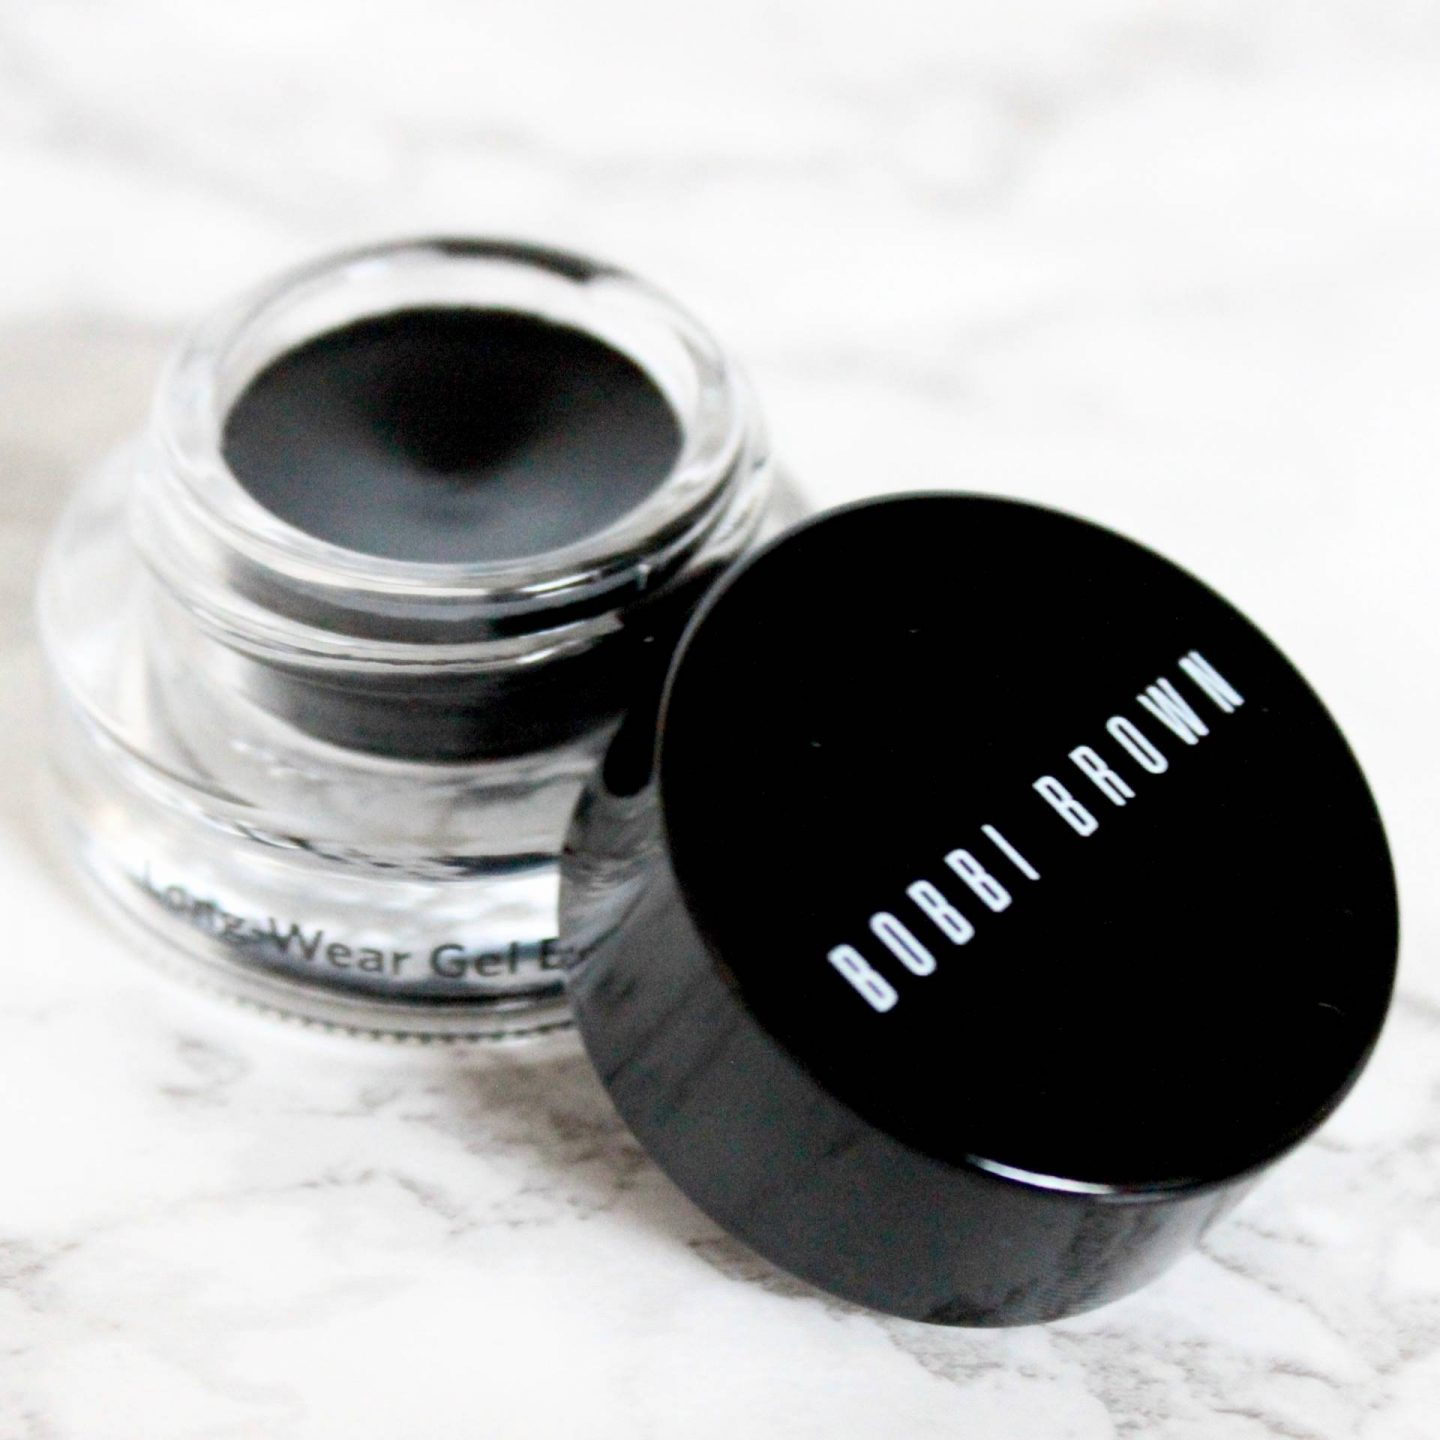 Bobbi Brown Long-Wear Gel Eyeliner in Black Ink